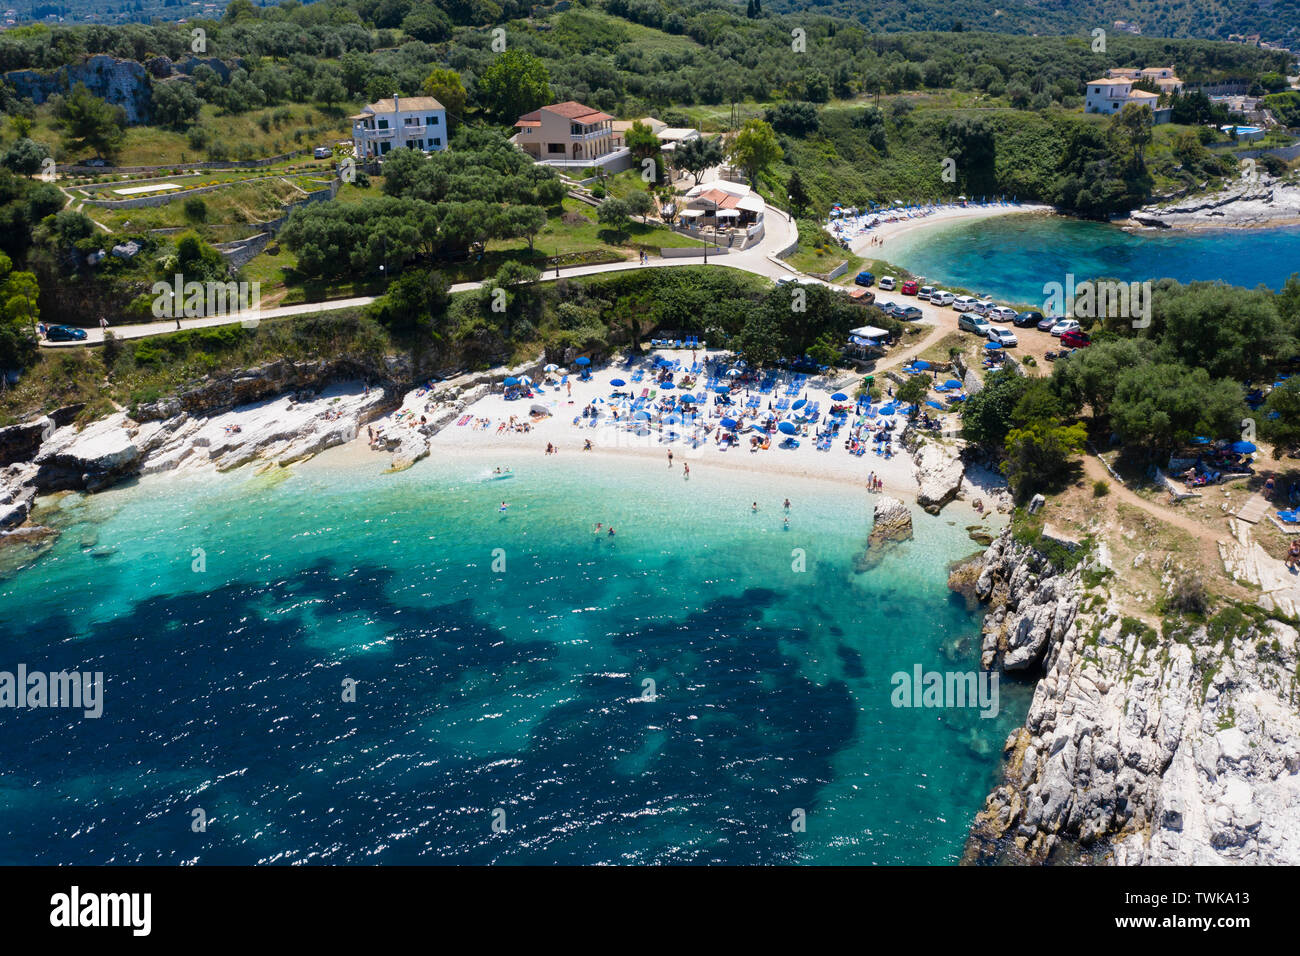 Aerial view of Cassiopi beach, holiday makers relaxing and swimming in blue warm sea. - Stock Image